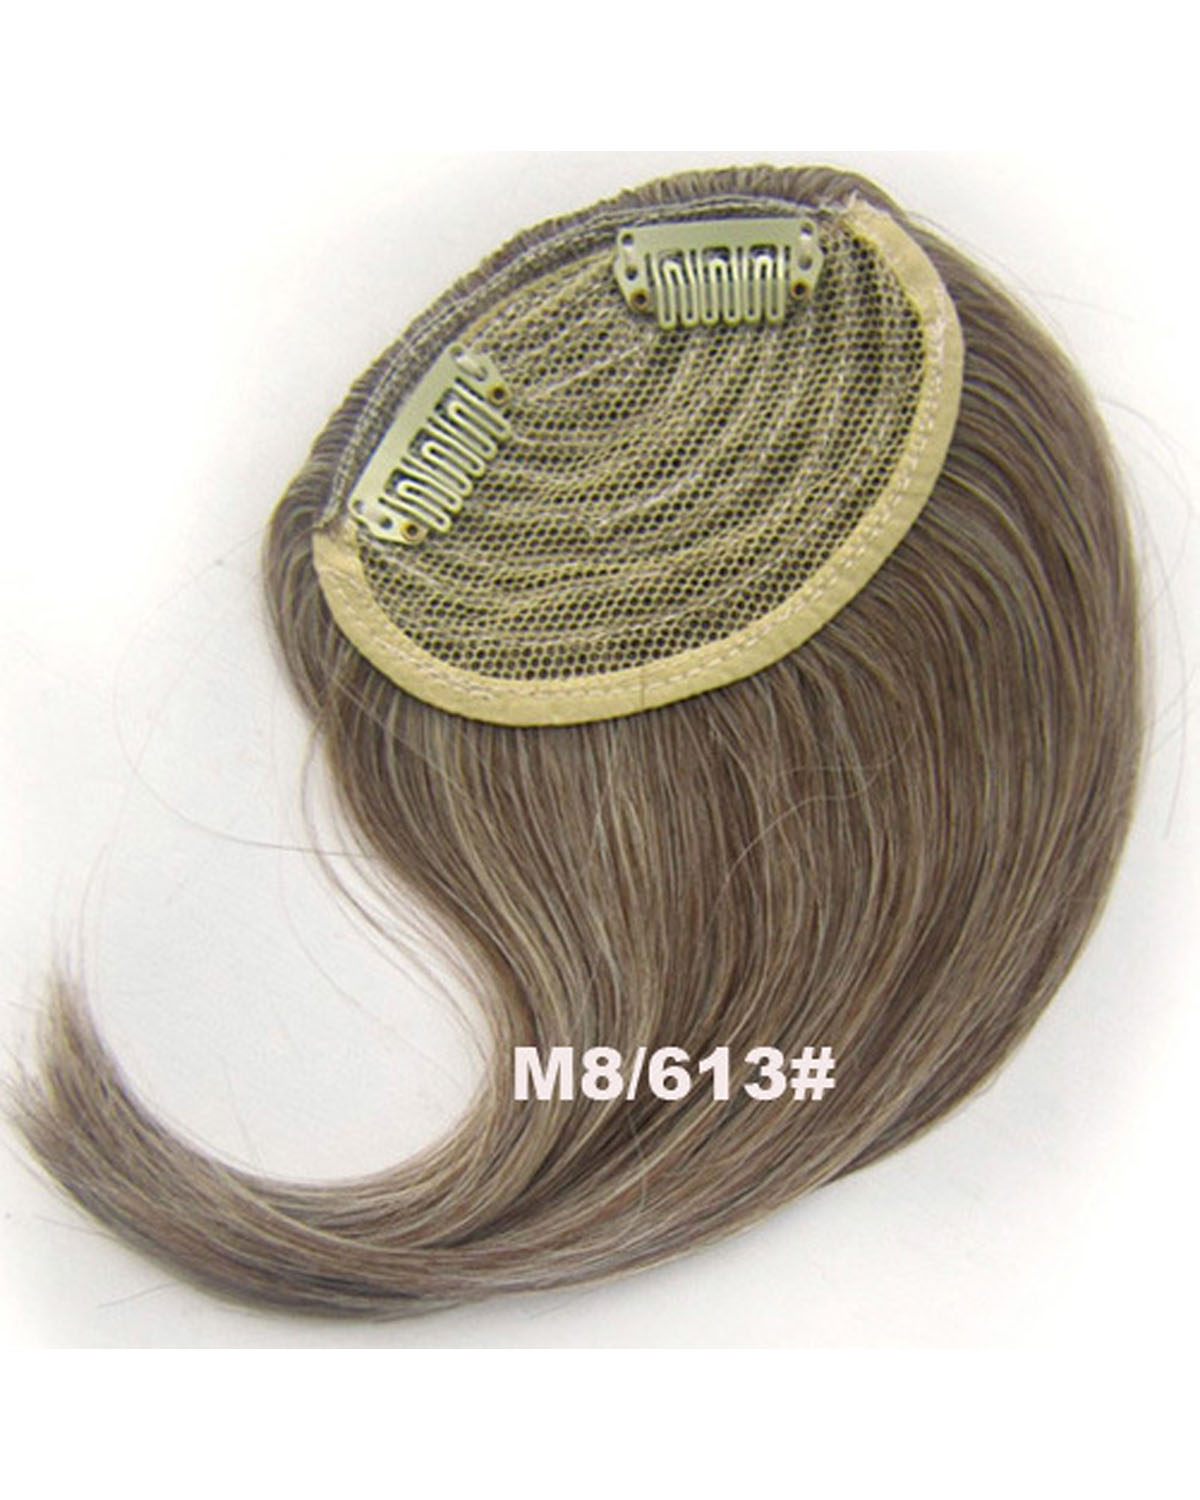 Girls Gorgeous Straight Short Bangs Clip in Synthetic Hair Extension Fringe Bangs HairpieceM8/613#